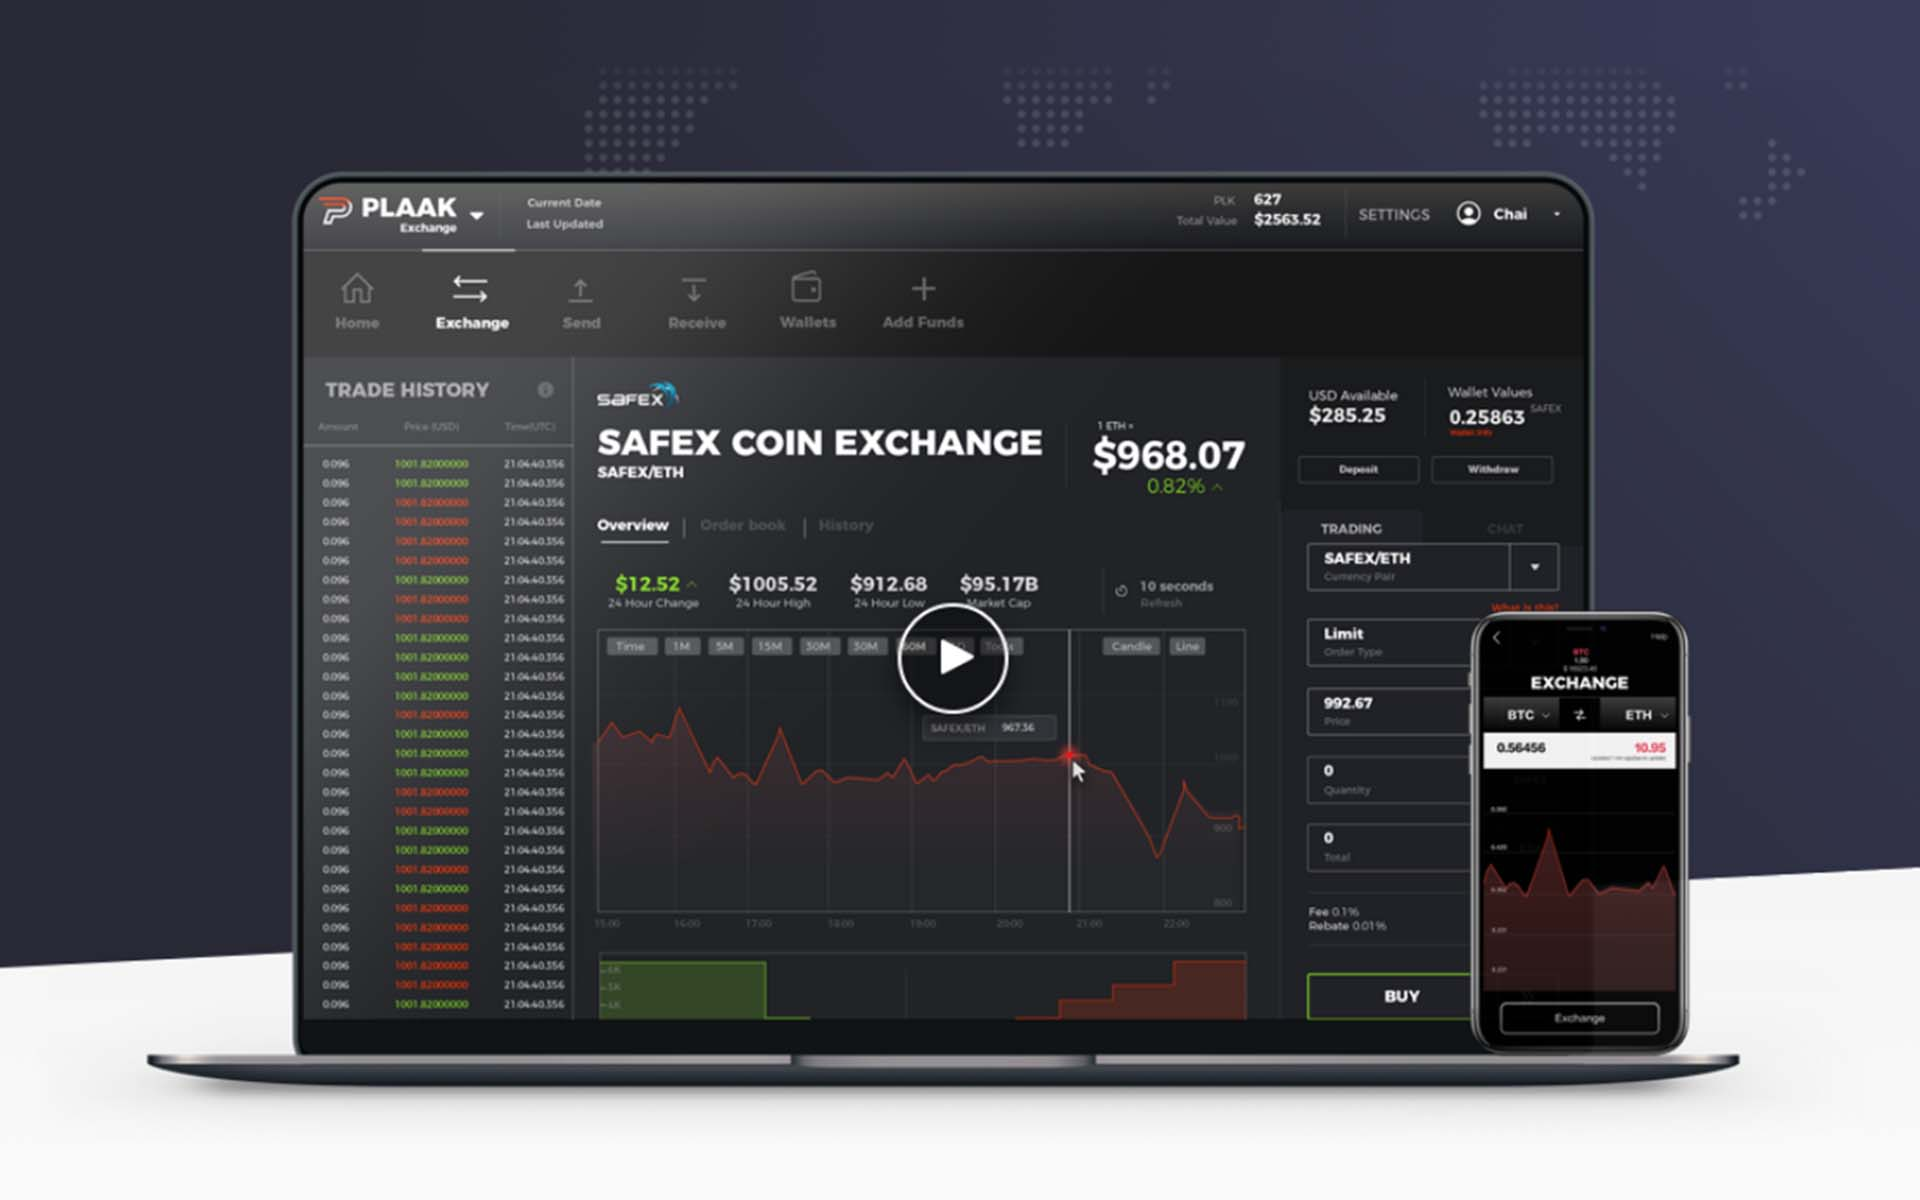 Plaak Is Pleased to Announce That Safex Will List Their Token on Our up and Coming Plaak Exchange.